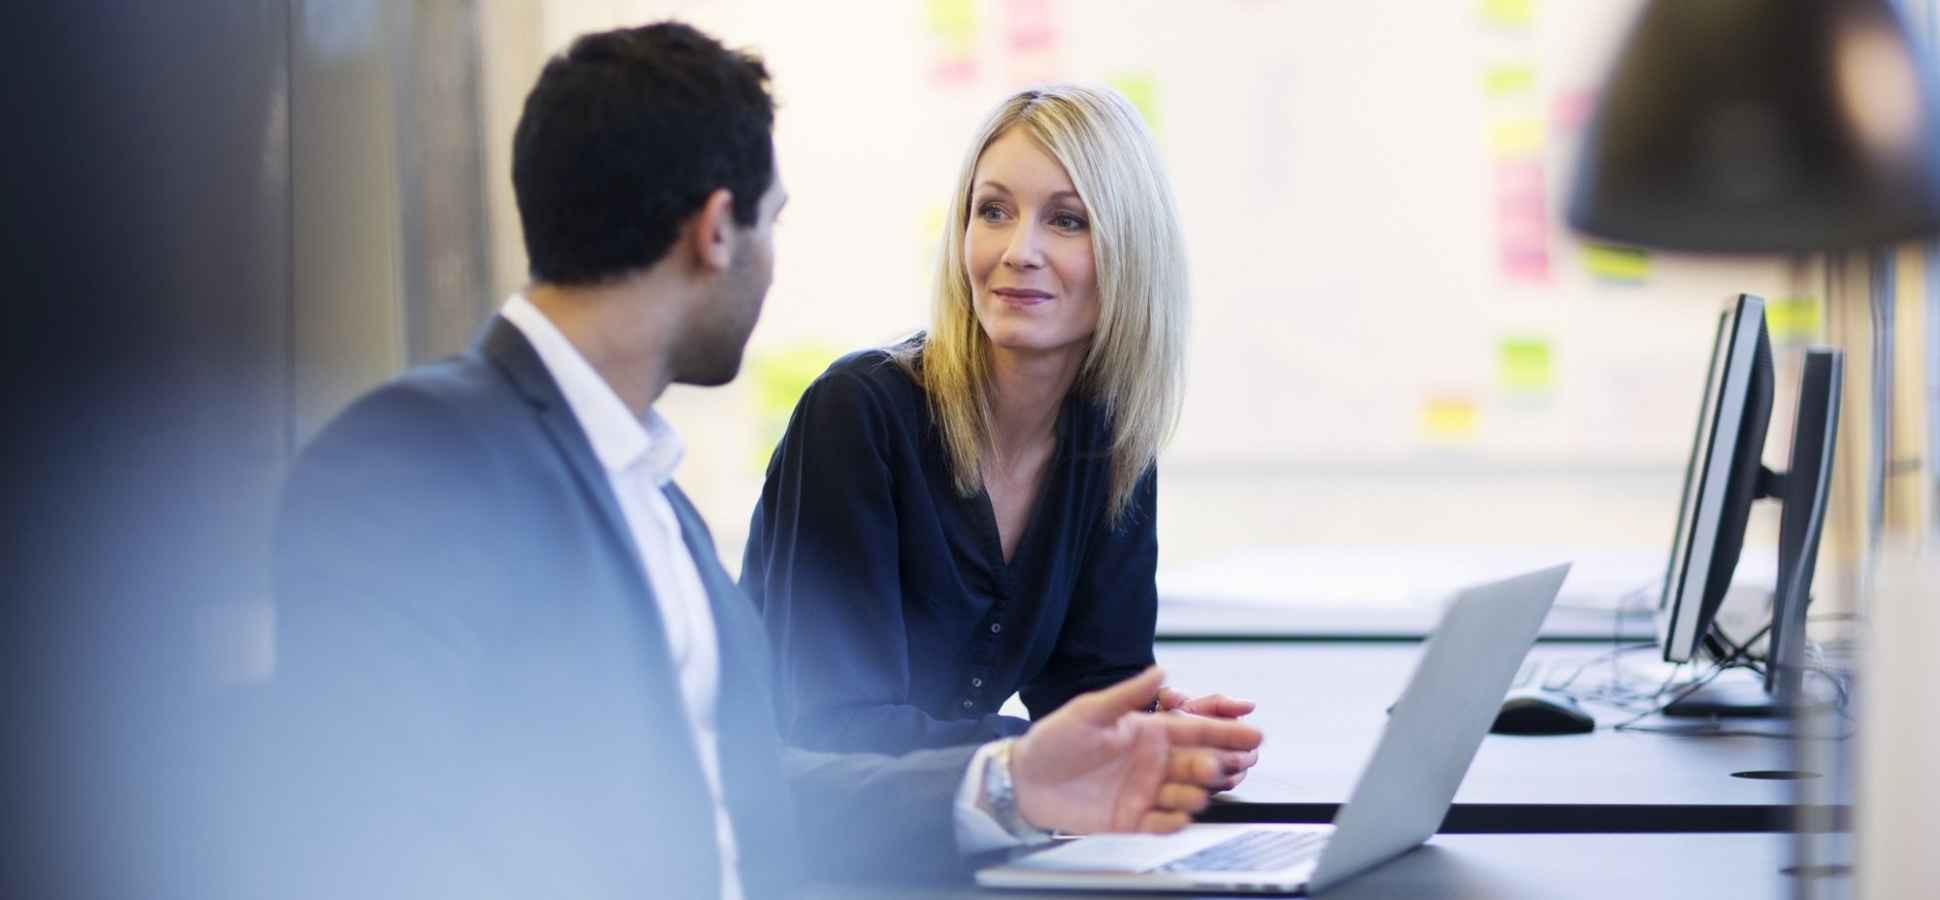 5 Surefire Ways Working With an Executive Coach Will Give You a Competitive Edge